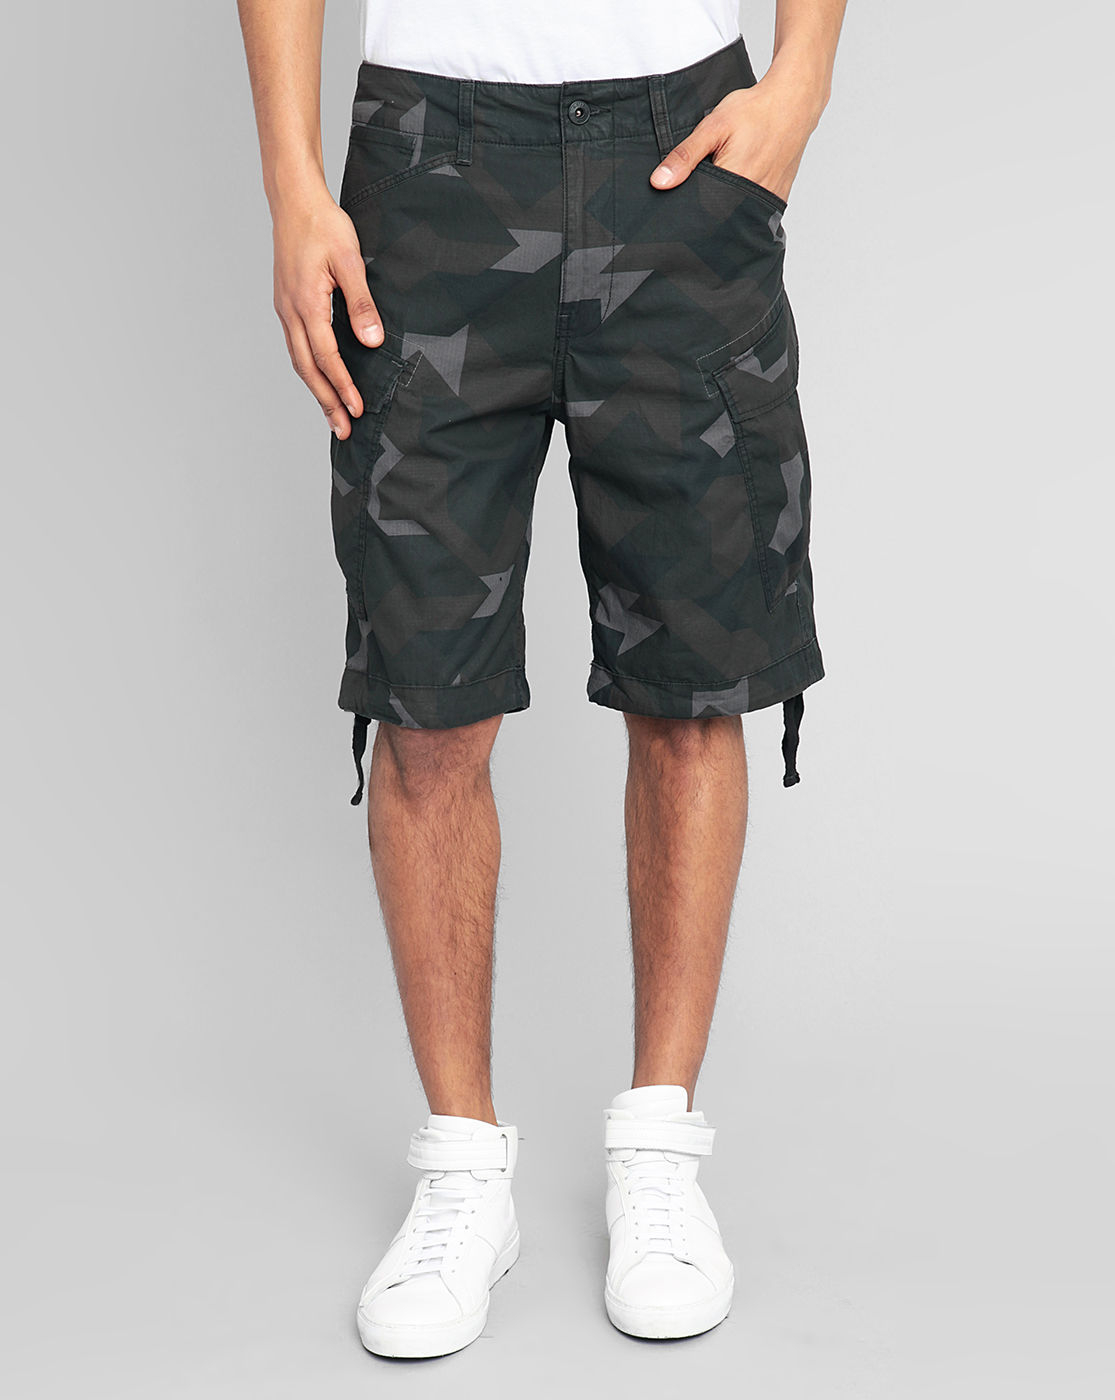 star raw green camo grey rovic combat cargo bermuda shorts for men. Black Bedroom Furniture Sets. Home Design Ideas